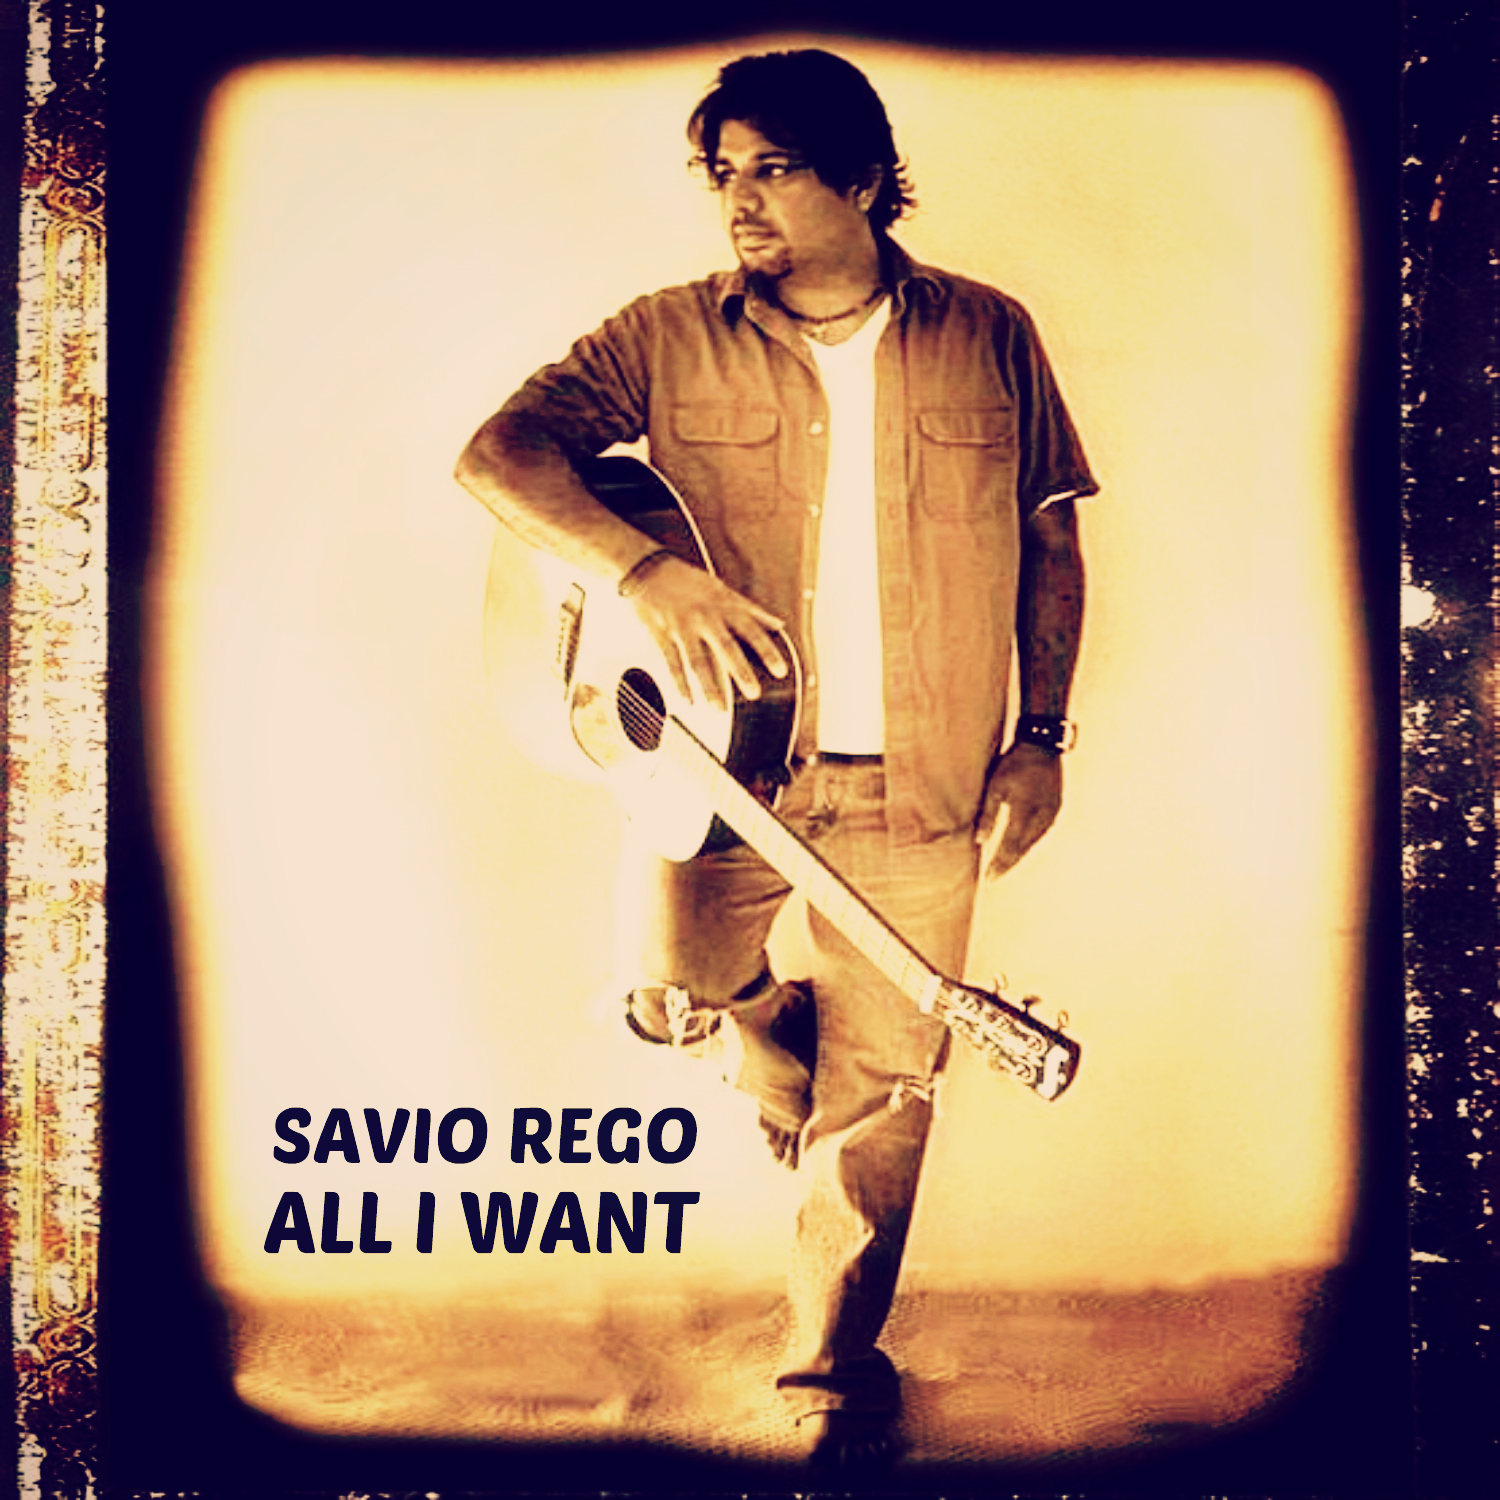 smooth jazz, jazz music, savio rego